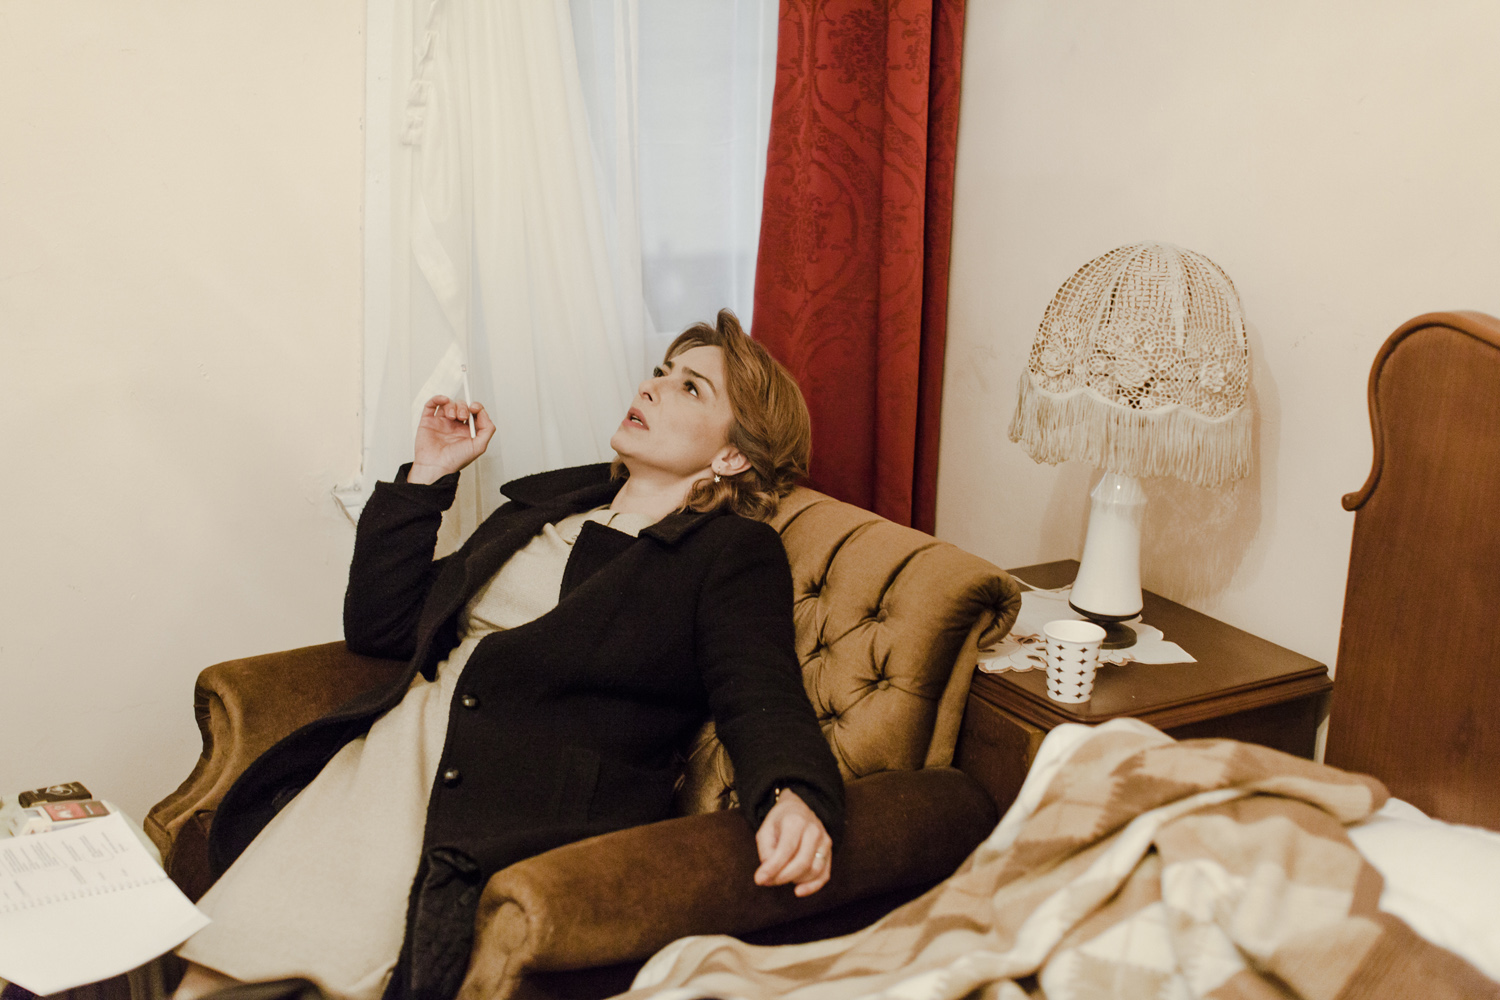 A woman collapses into her chair after a heated argument, Beykoz, Istanbul, February 2013.